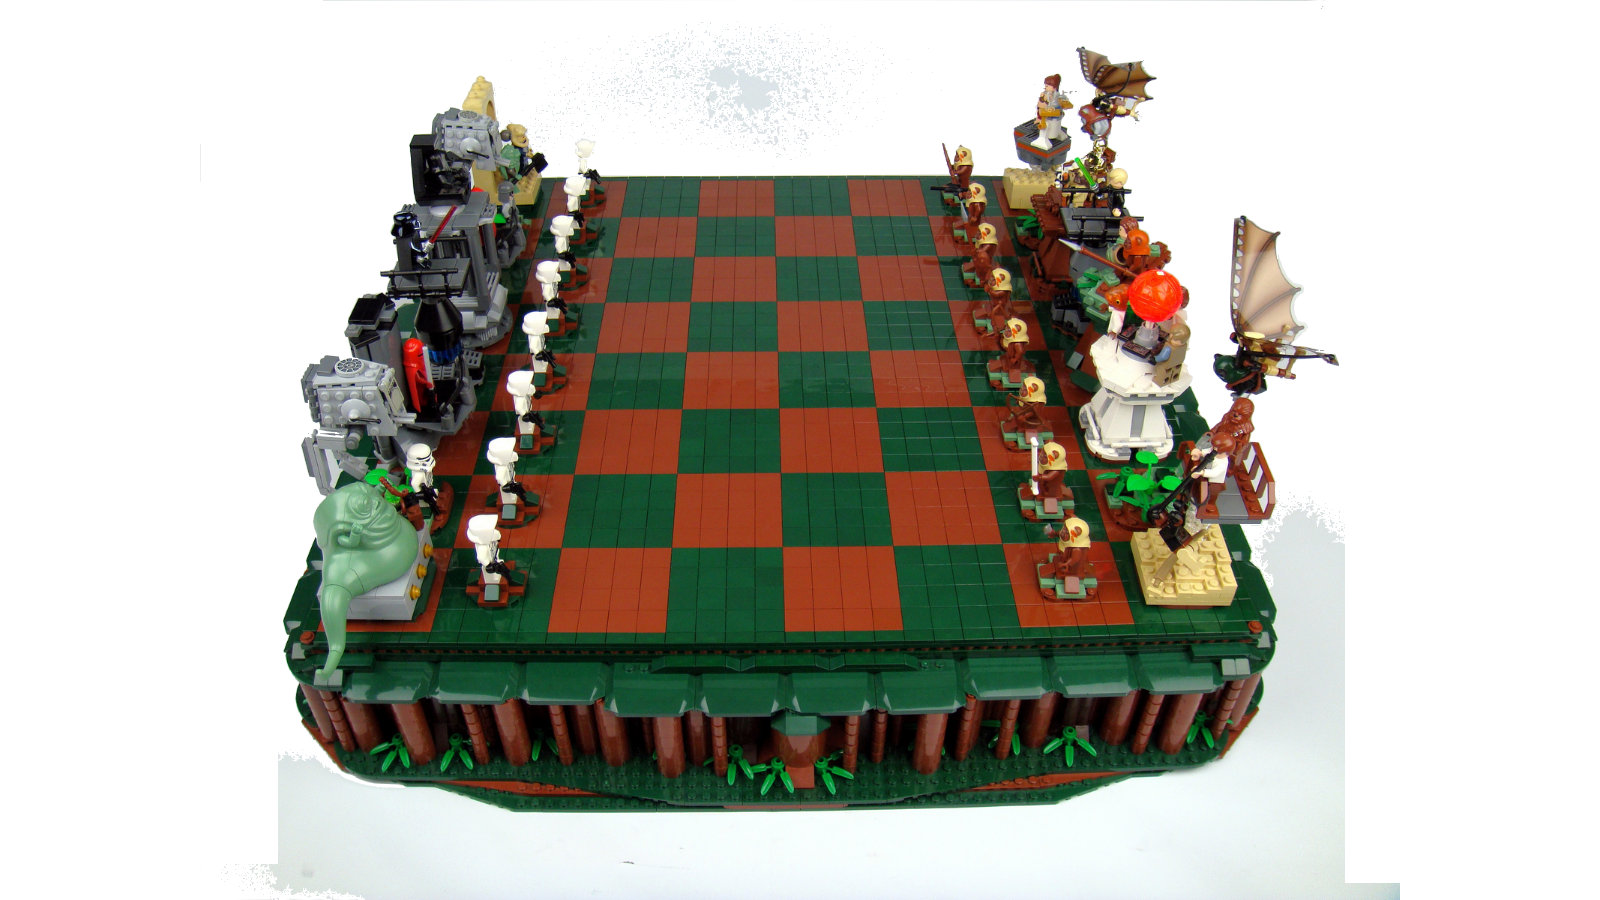 Click here to read You've Got to Be Crafty to Take Down the Empire With this LEGO Star Wars Chess Set